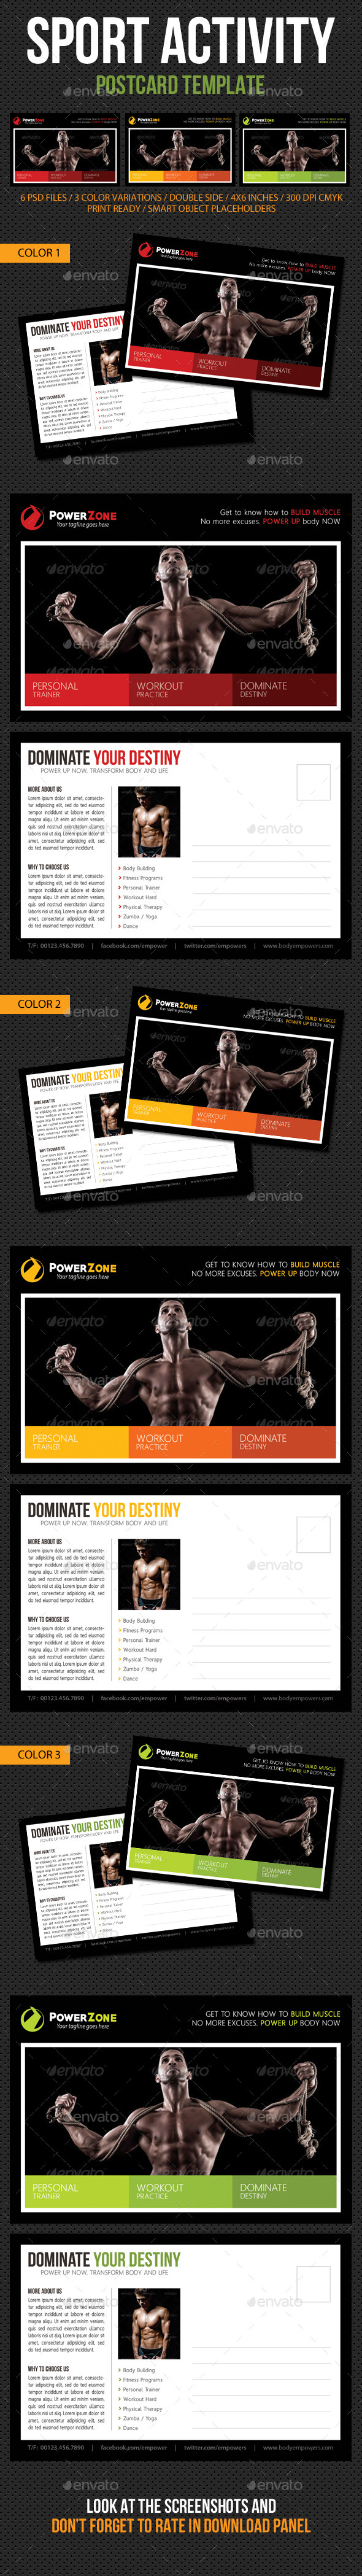 GraphicRiver Sport Activity Postcard Template V09 10663140